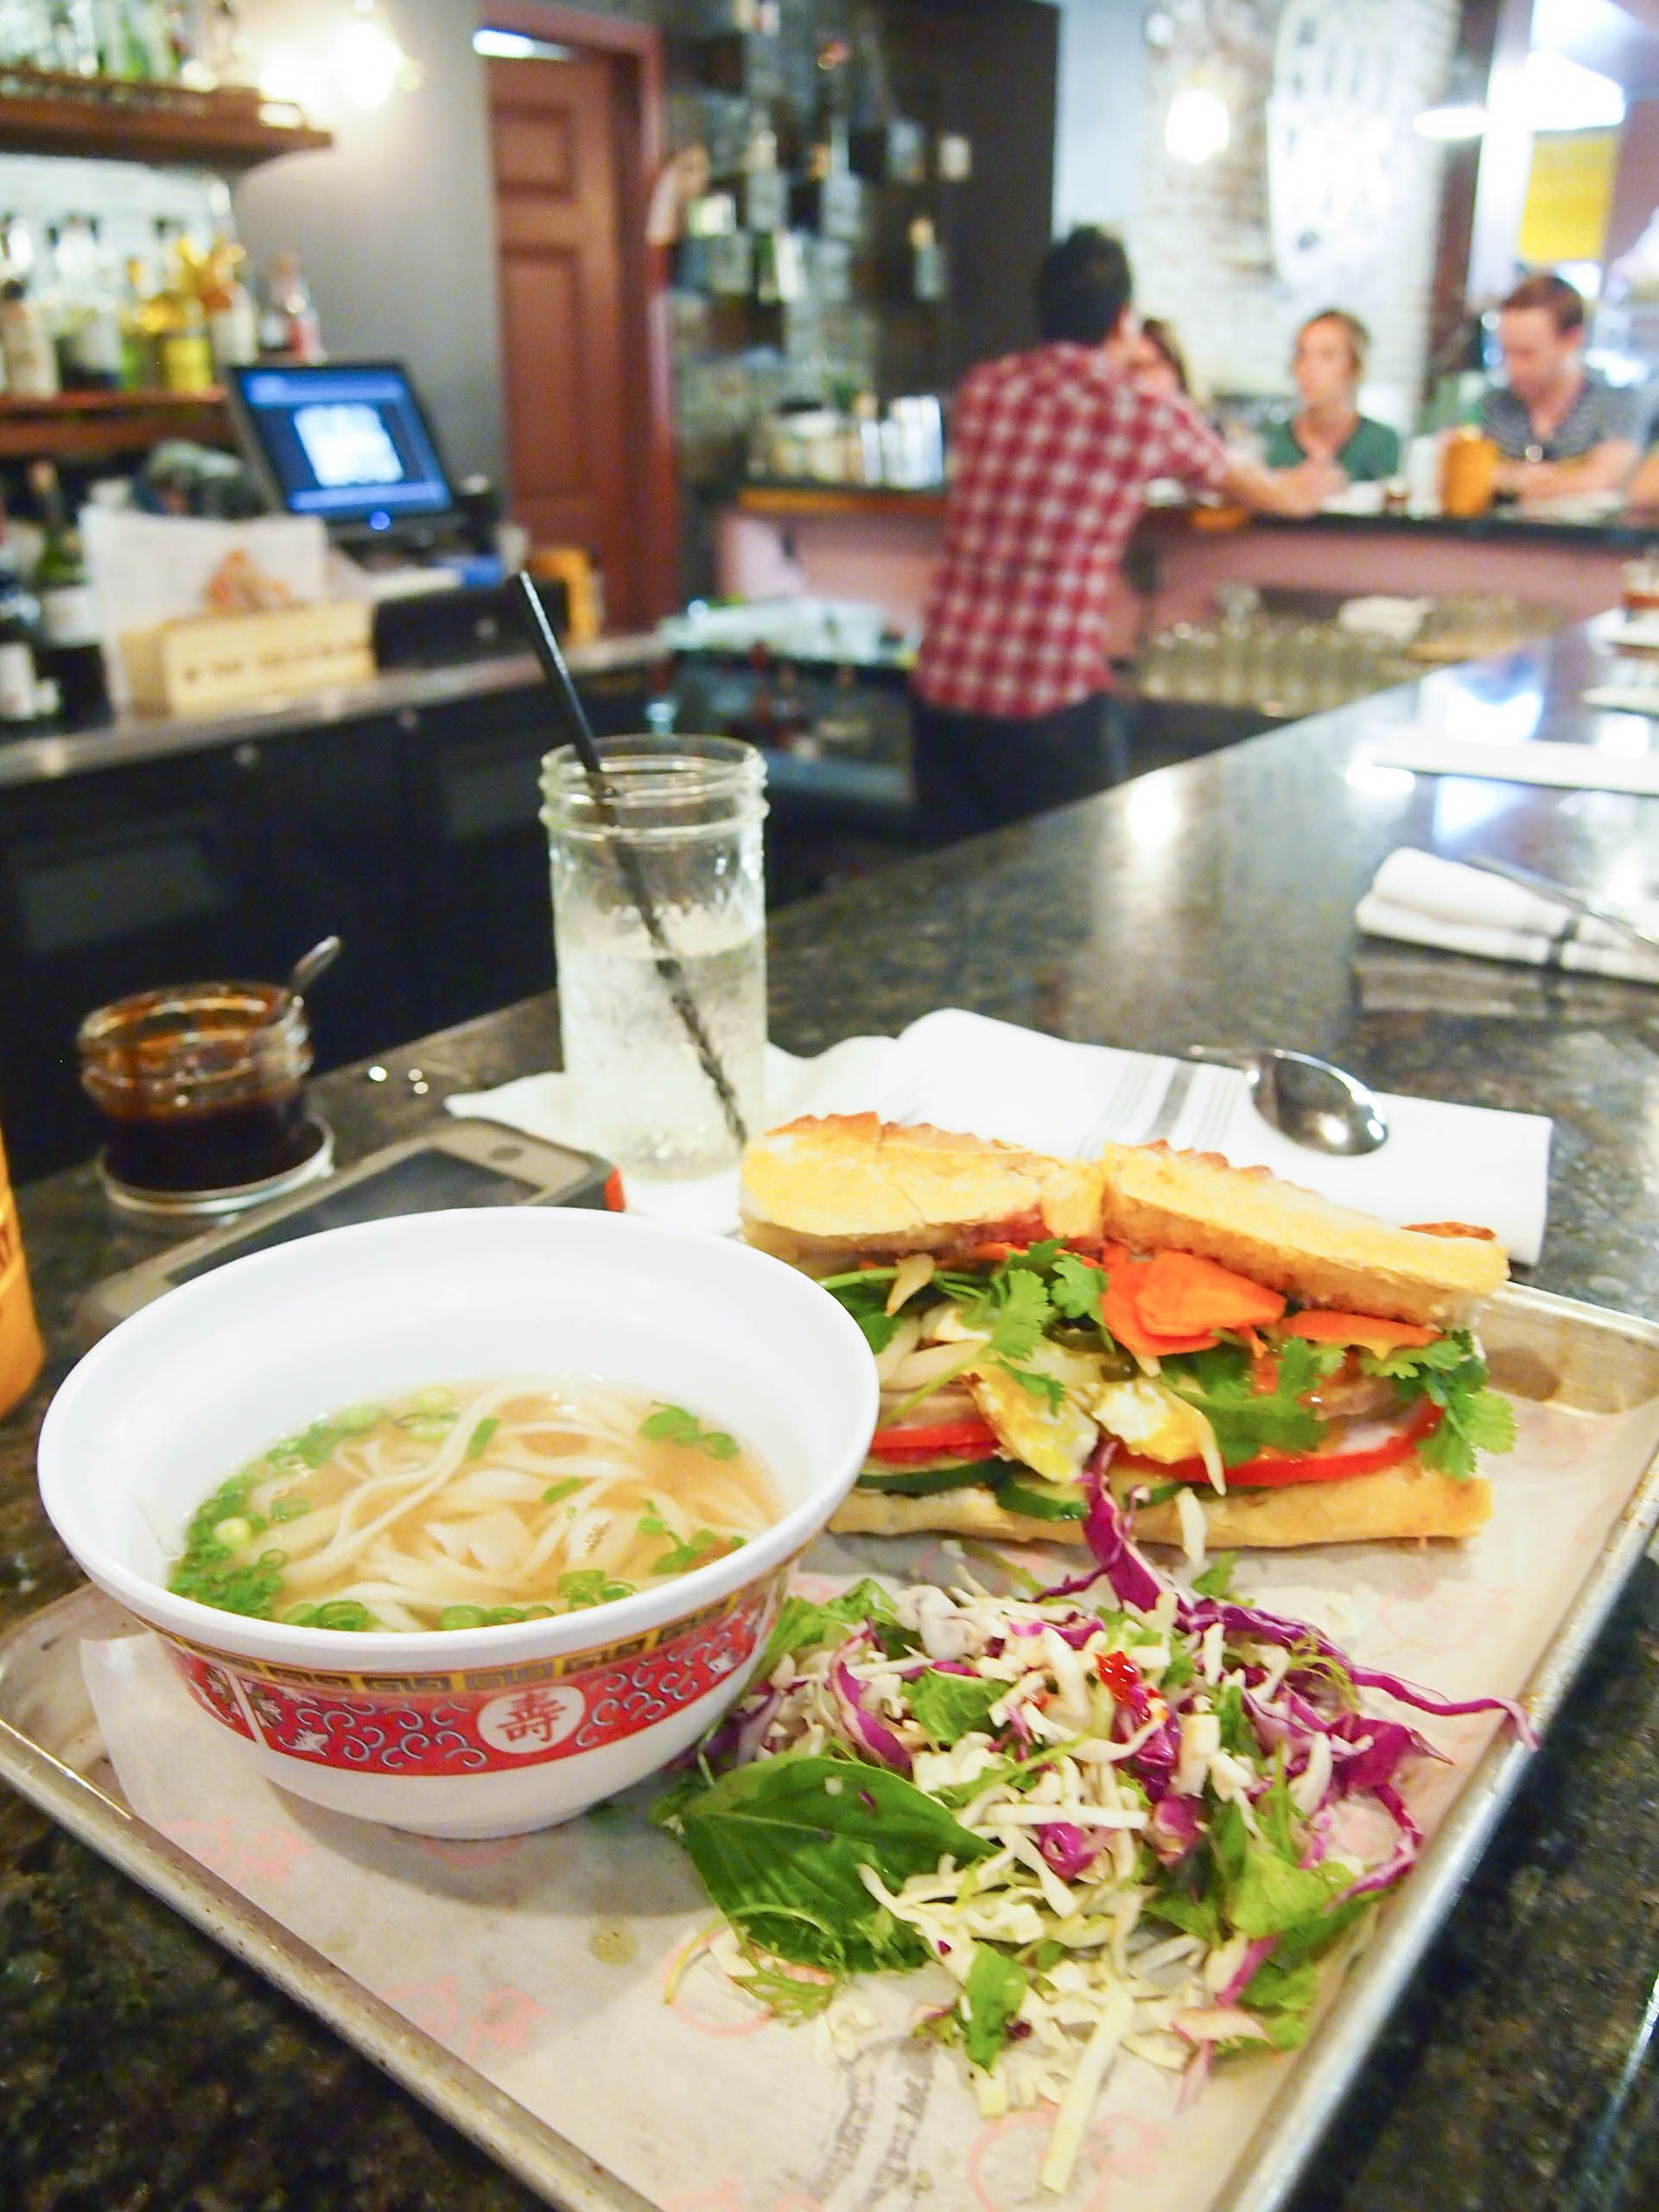 Bun bo hue noodle soup and a banh mi from The Pig and the Lady in Honolulu